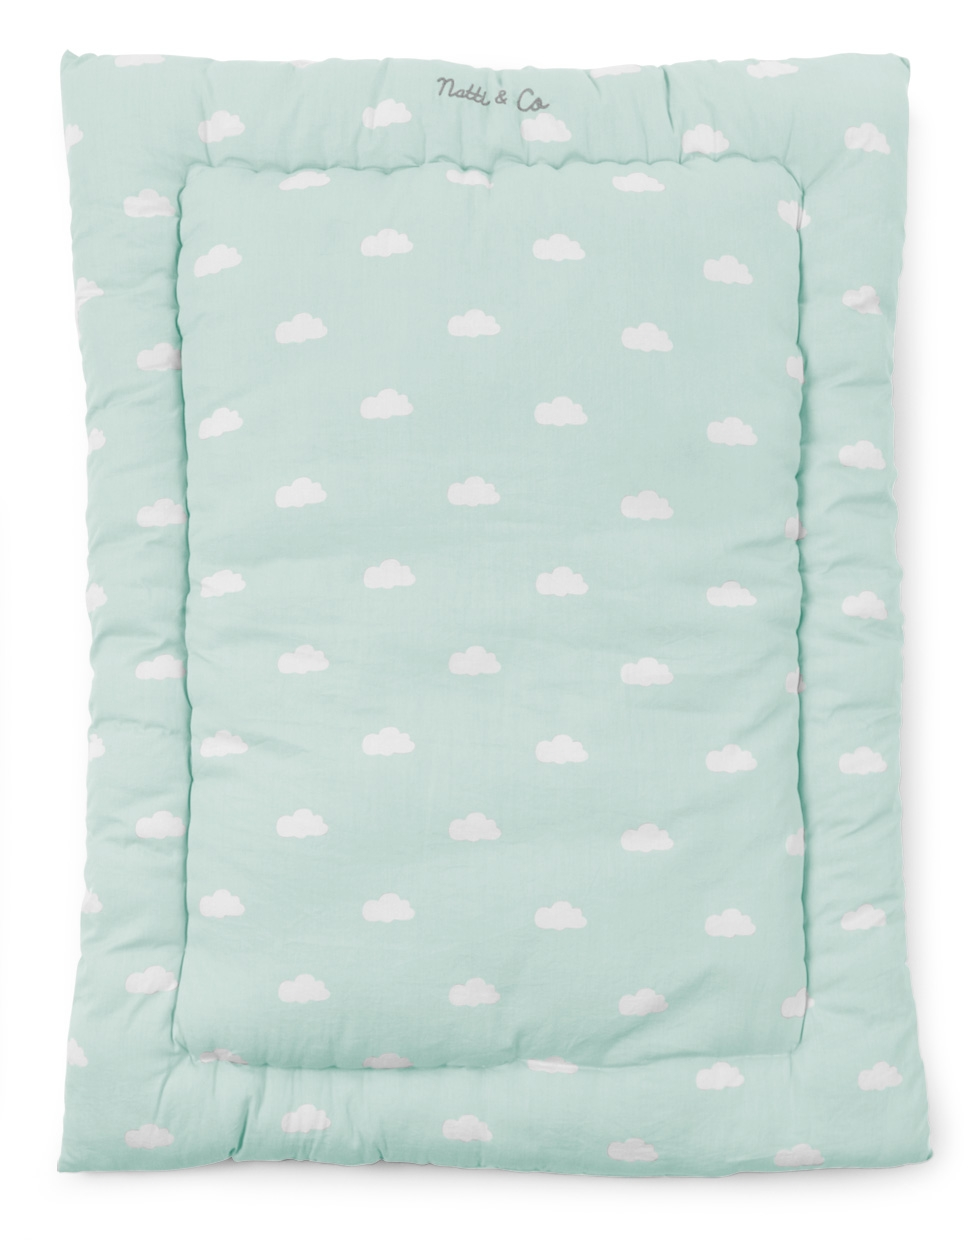 tapis de parc snoozy nuages natti co de 75x95 childwood so nuit